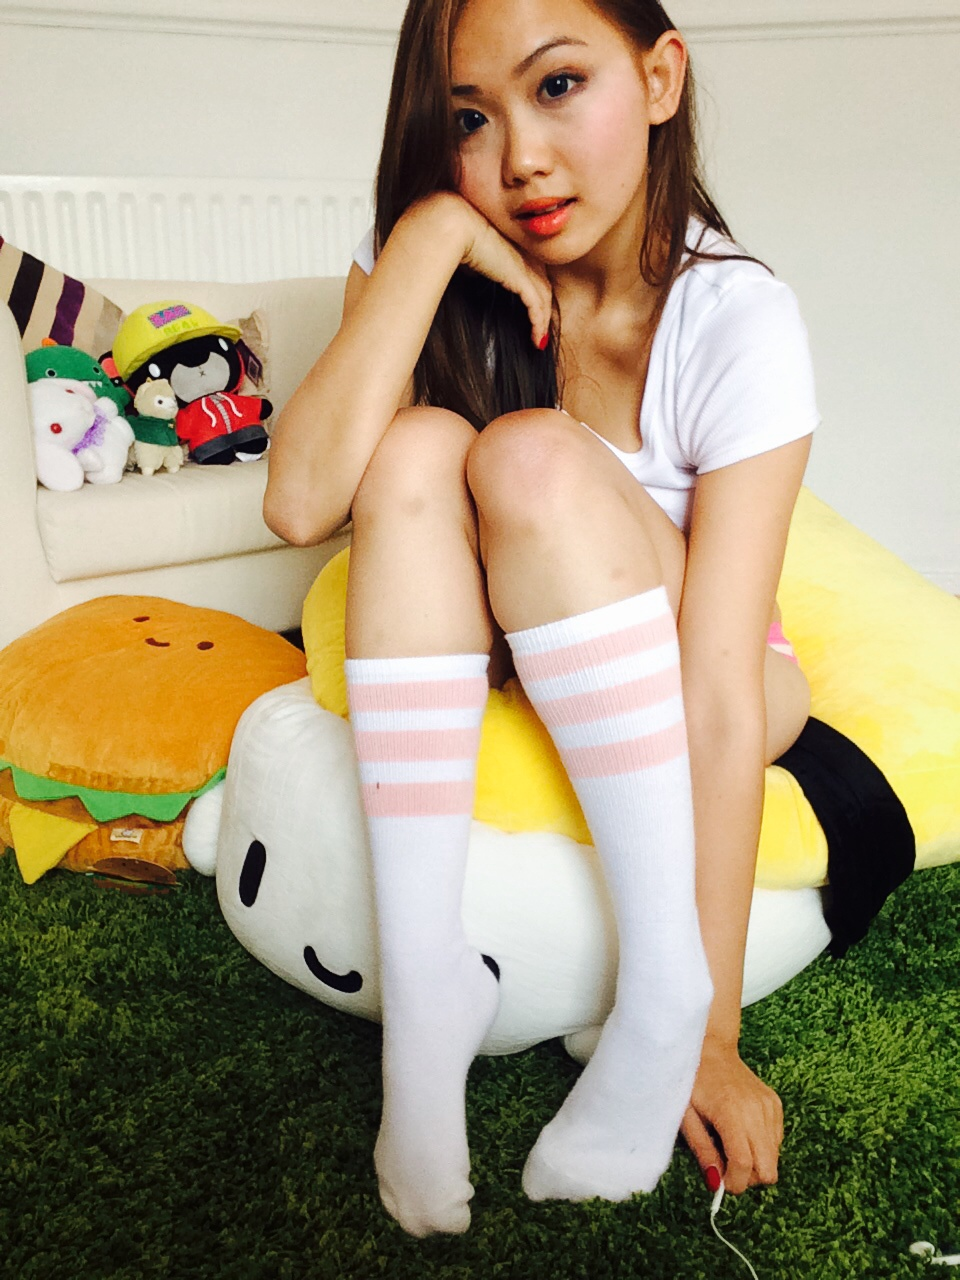 Socks in knee high flexible girls